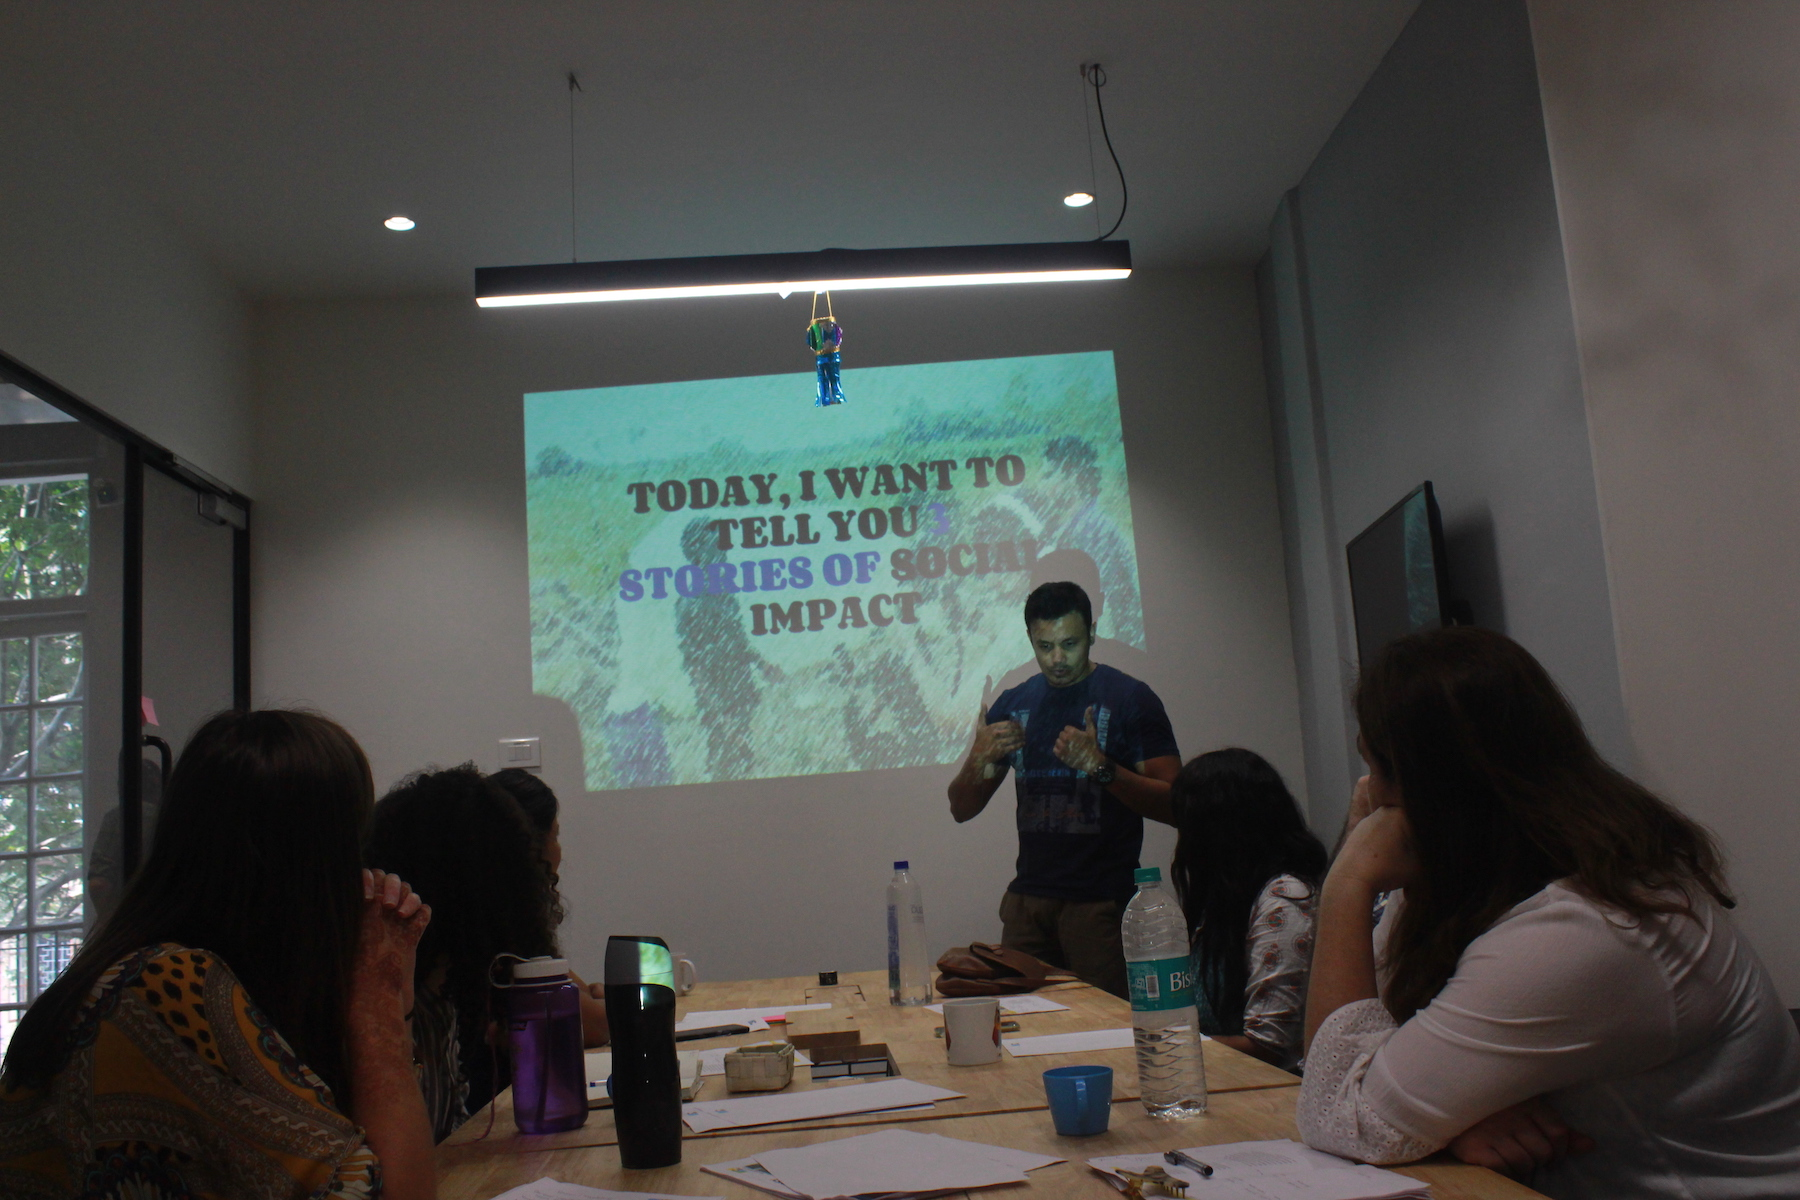 Volungearing training photo using social media to make an impact. Photo: Bianca Caruana